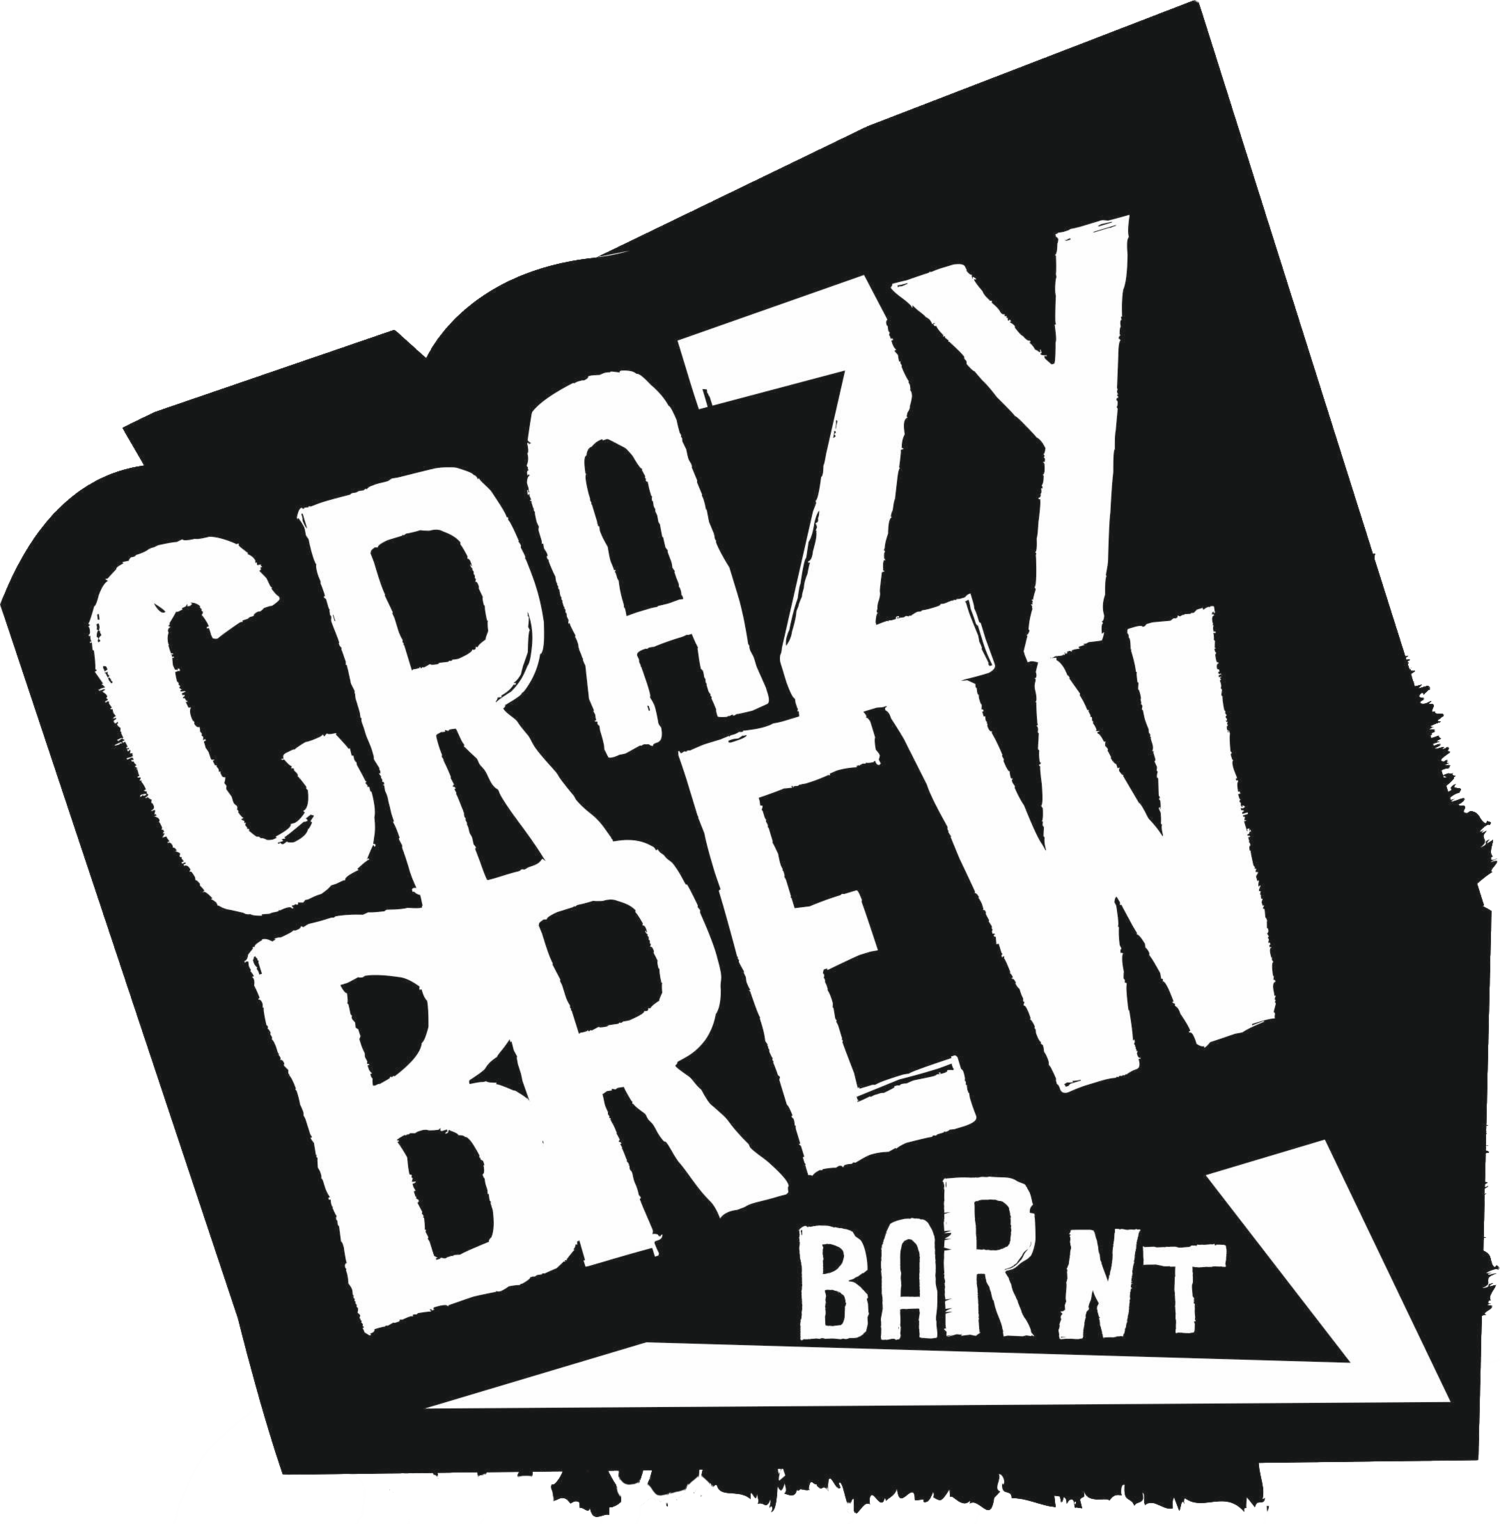 Crazy Brew Bar NT